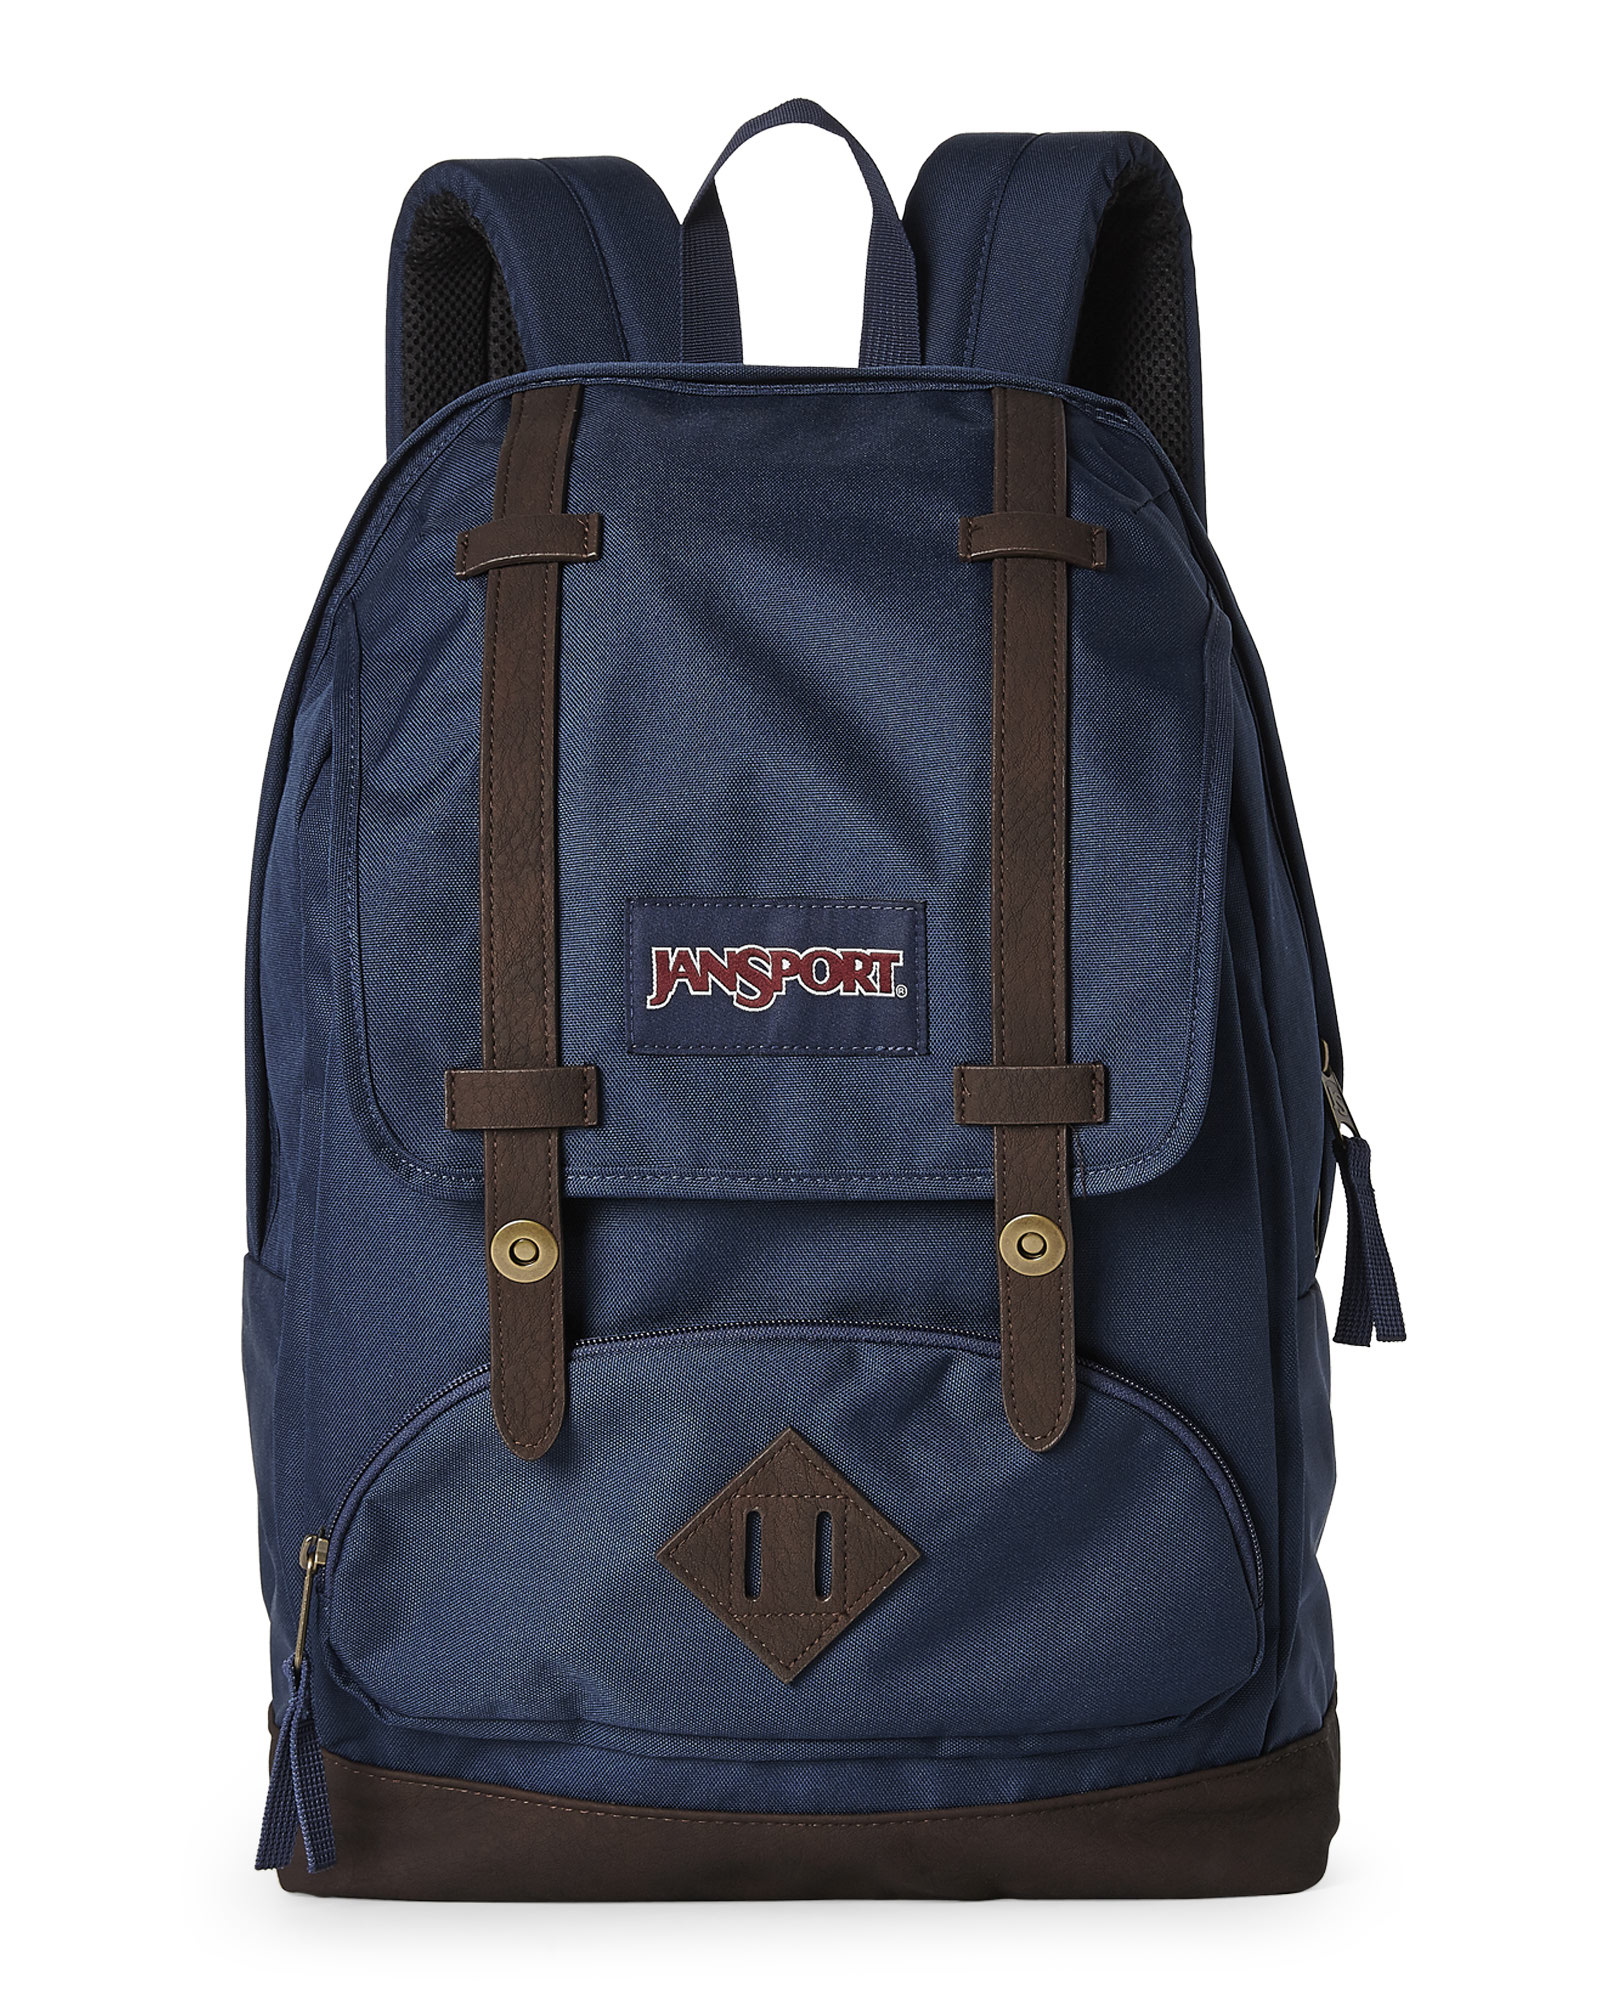 Where Are Jansport Backpacks Sold cbOS2MGN